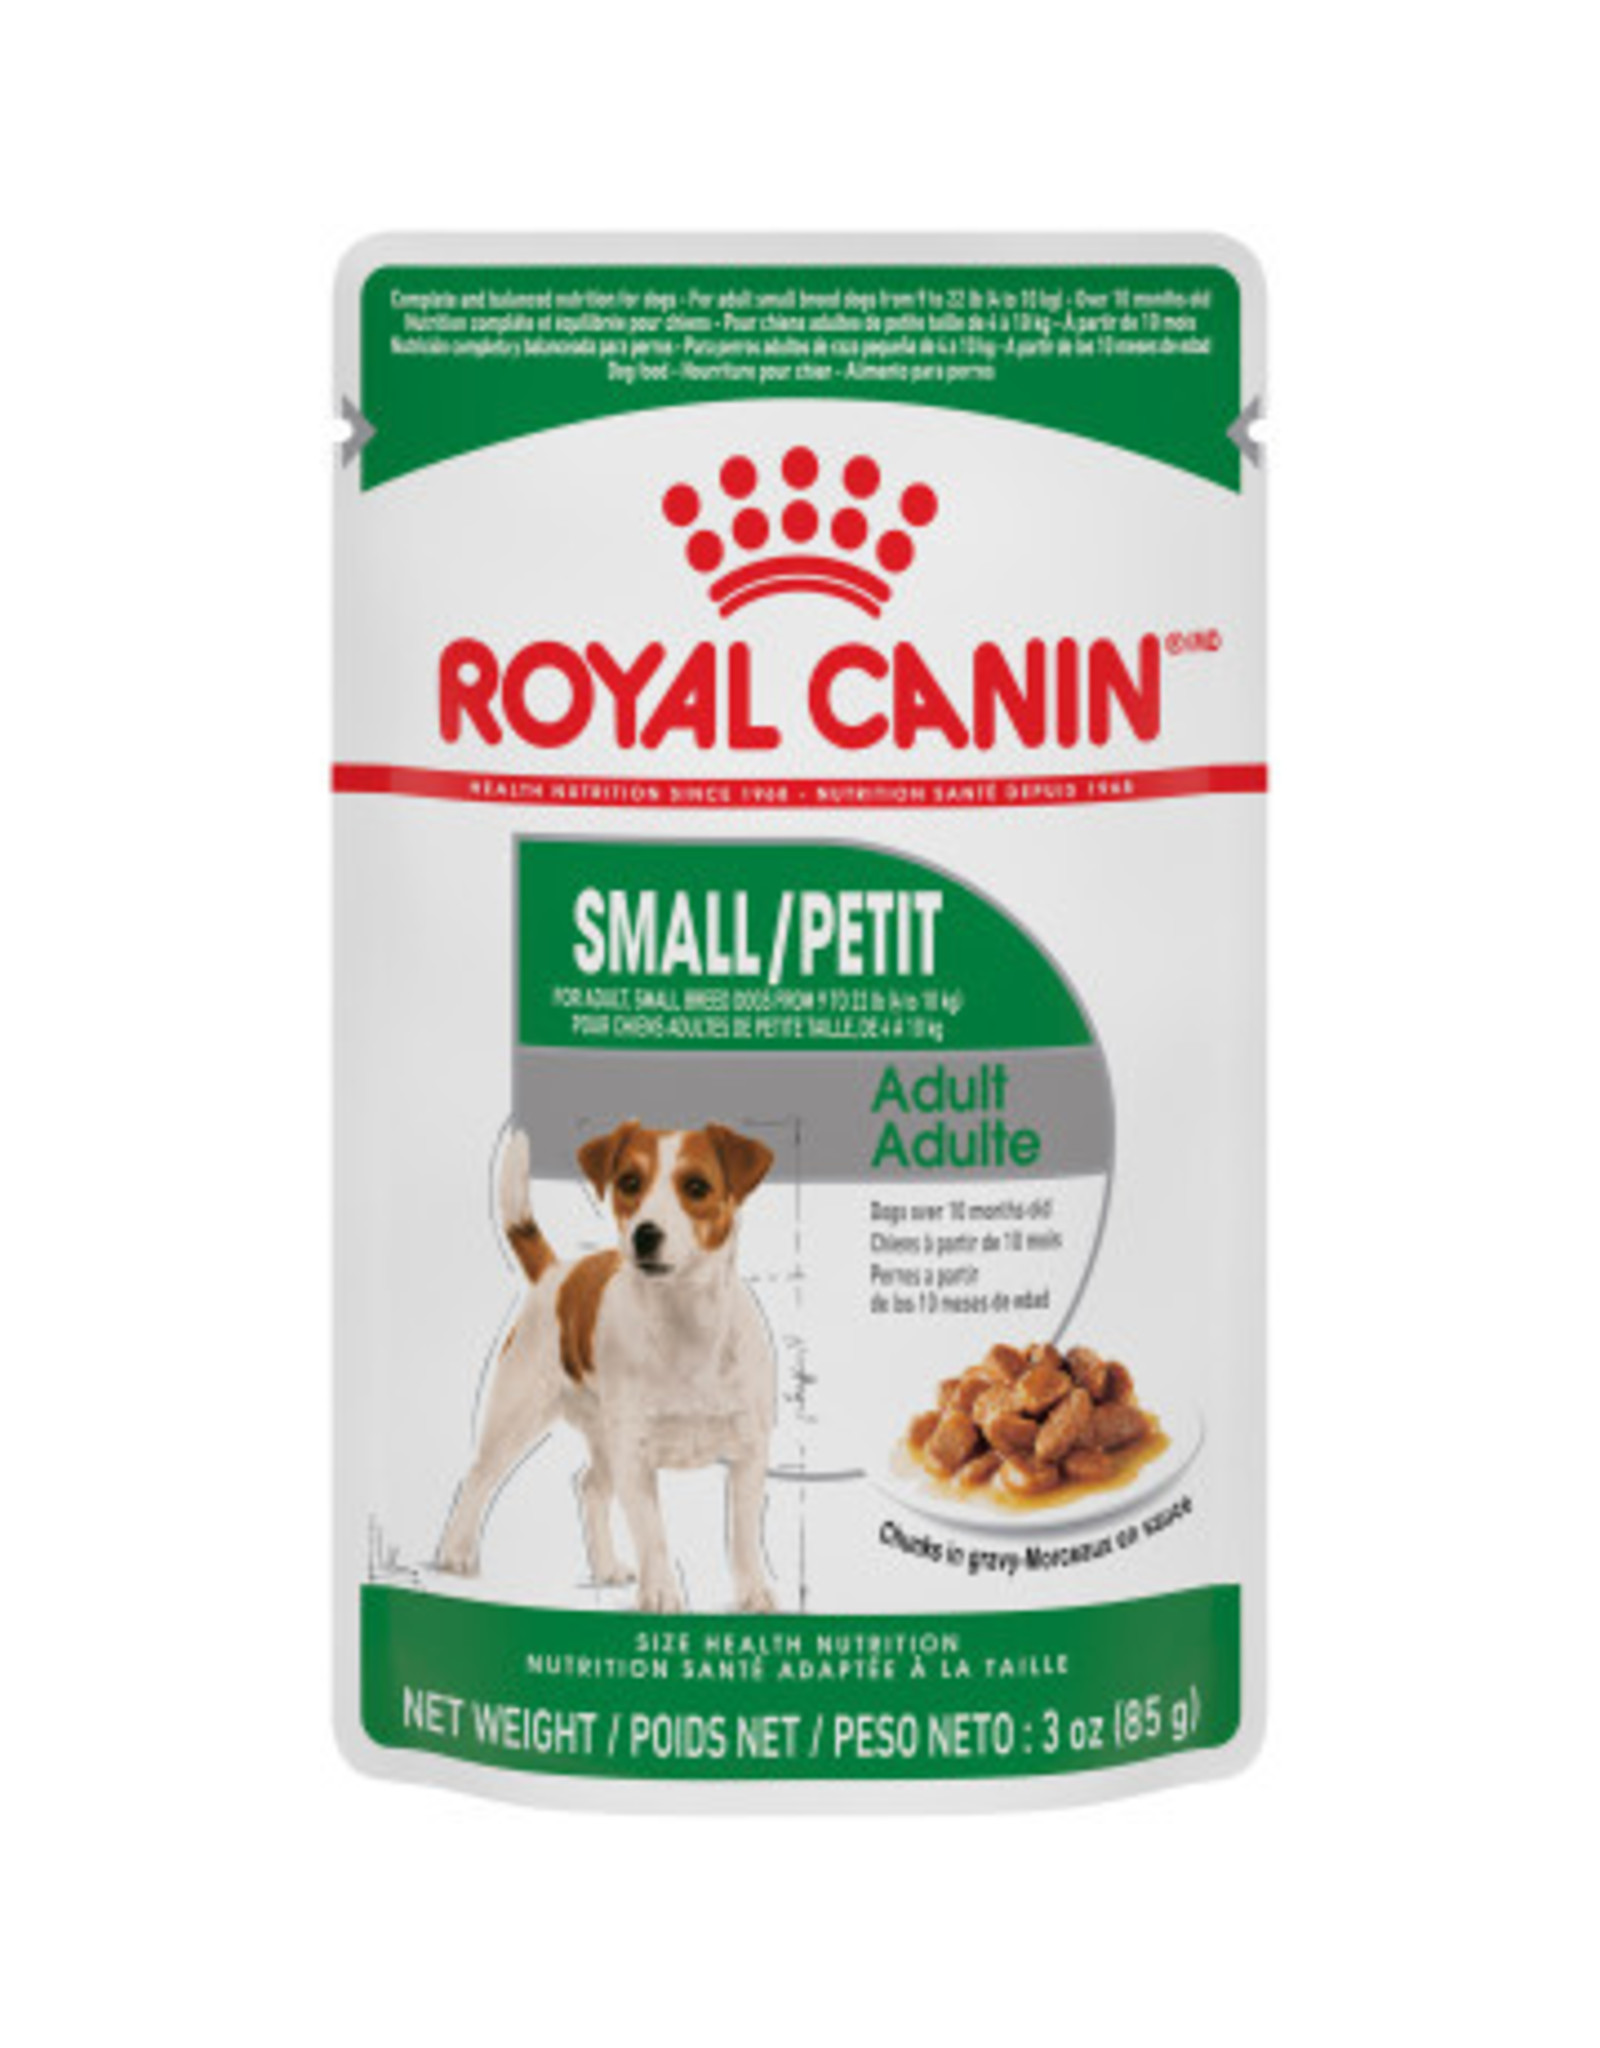 Royal Canin Royal Canin Small Adult Pouch 85g